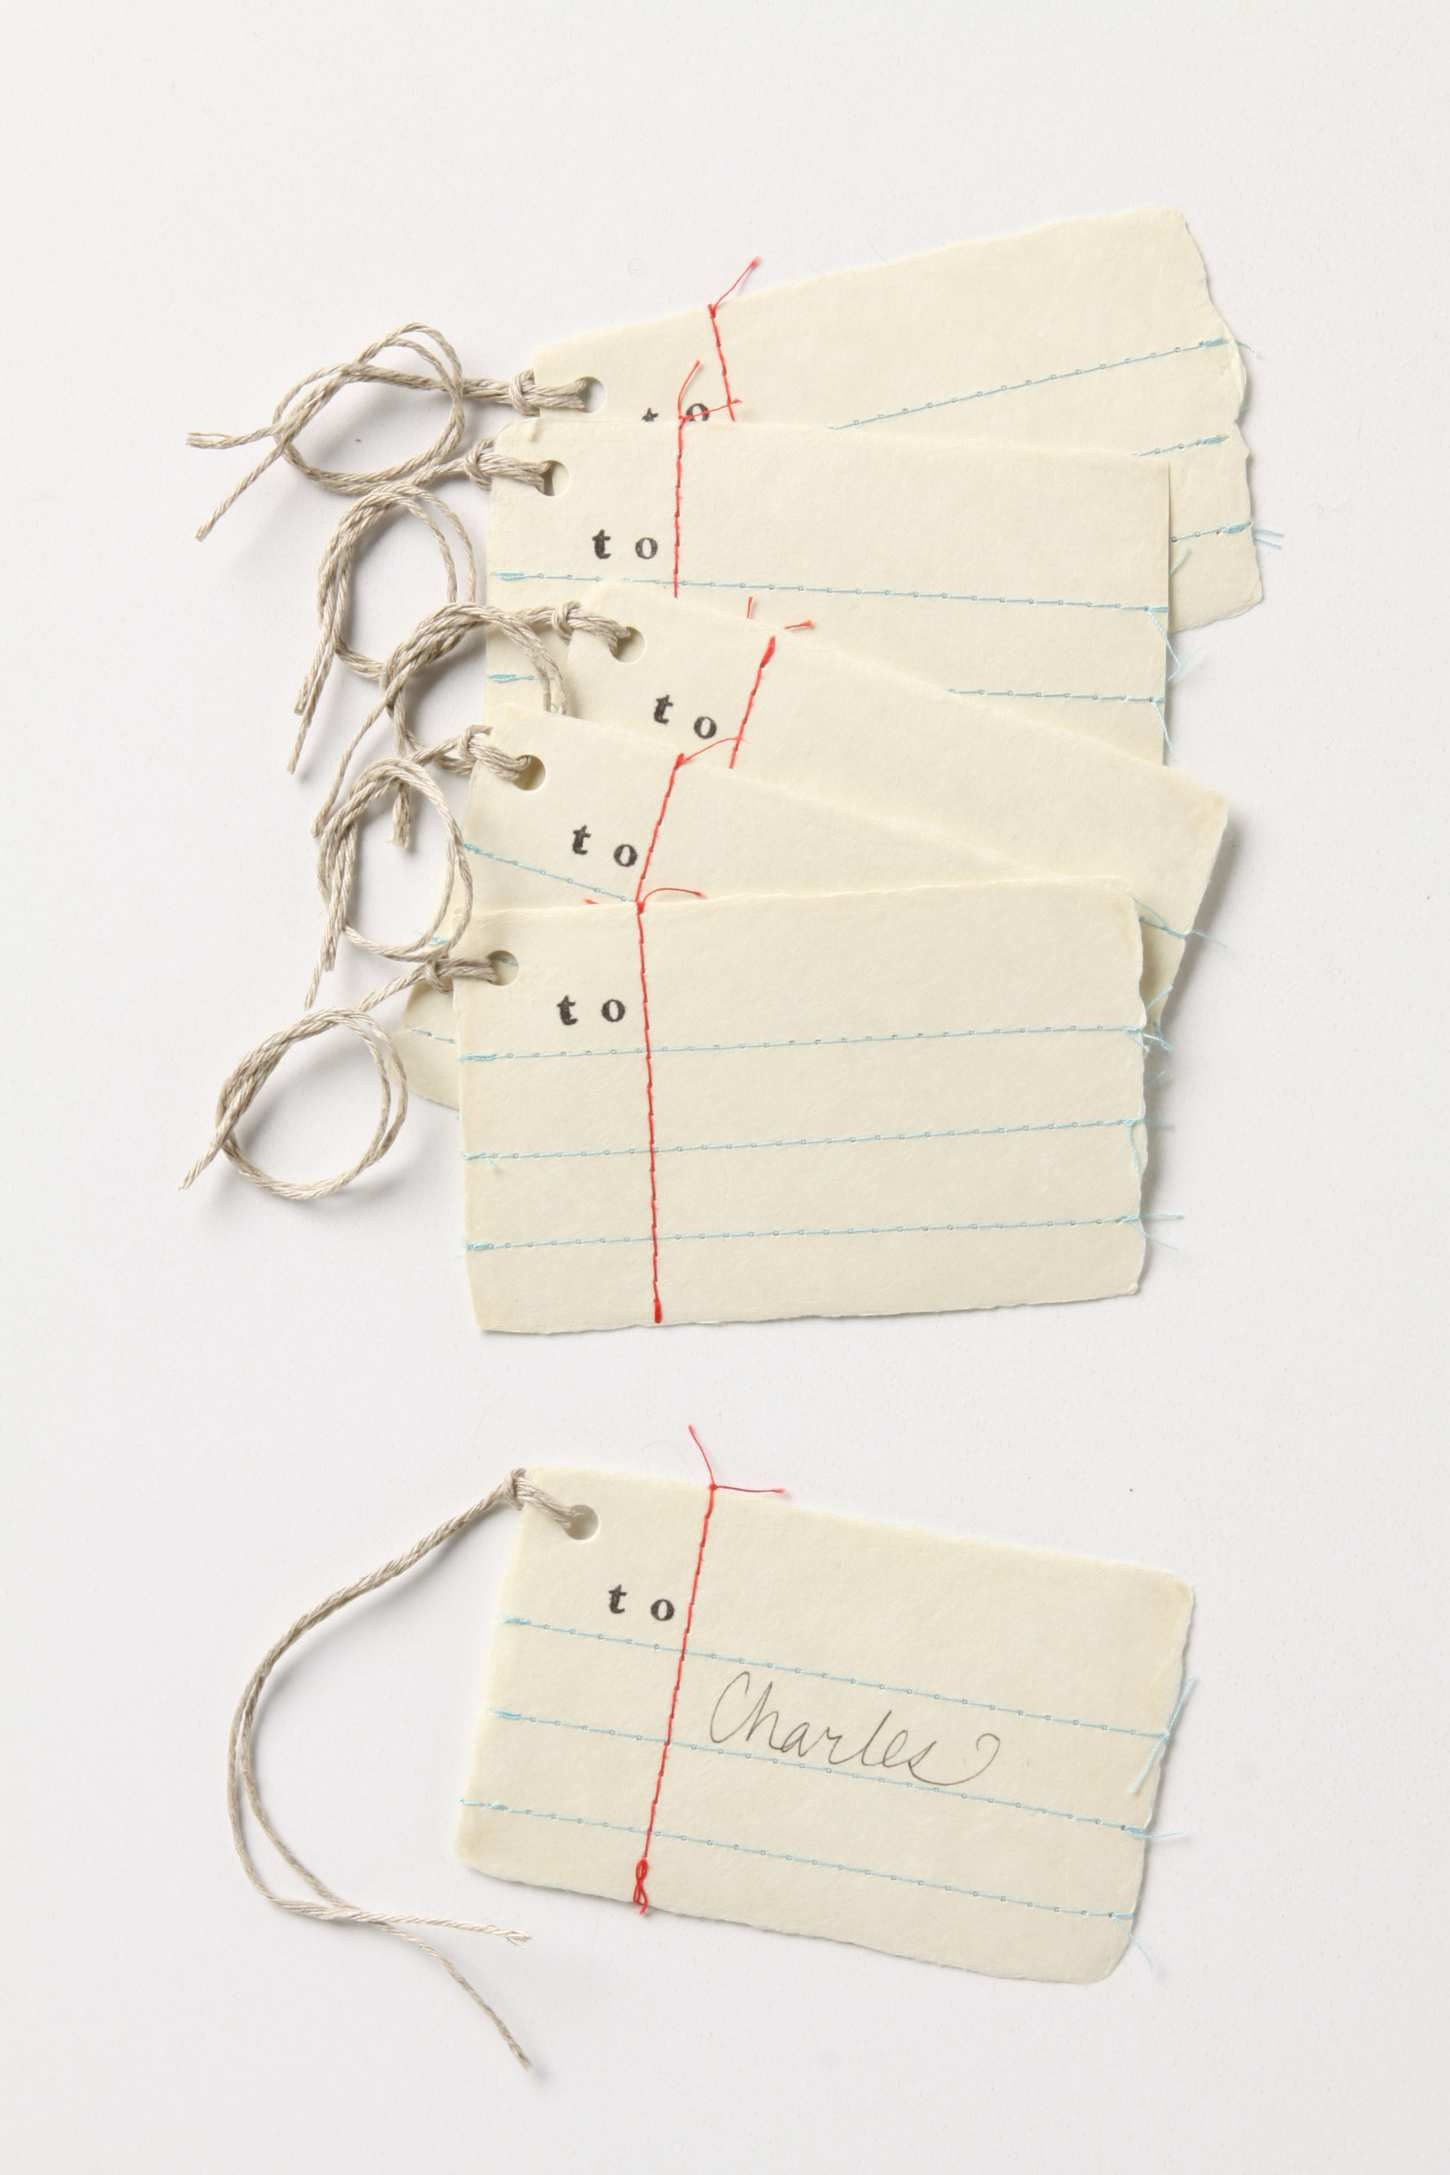 Anthropologie stitched gift tags